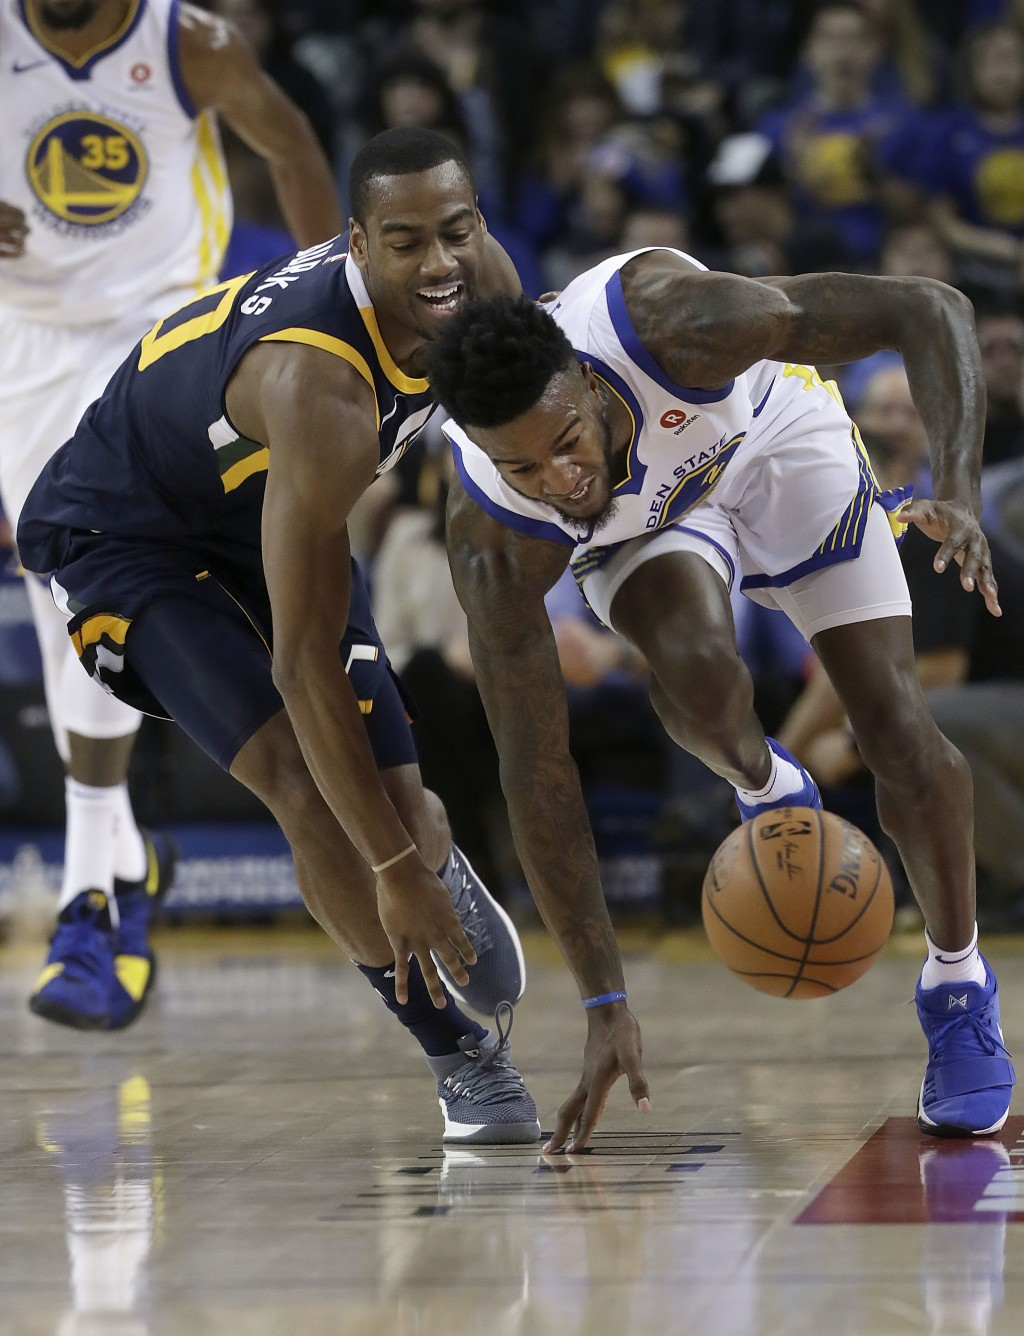 Golden State Warriors forward Jordan Bell, right, chases a loose ball next to Utah Jazz guard Alec Burks during the first half of an NBA basketball ga...